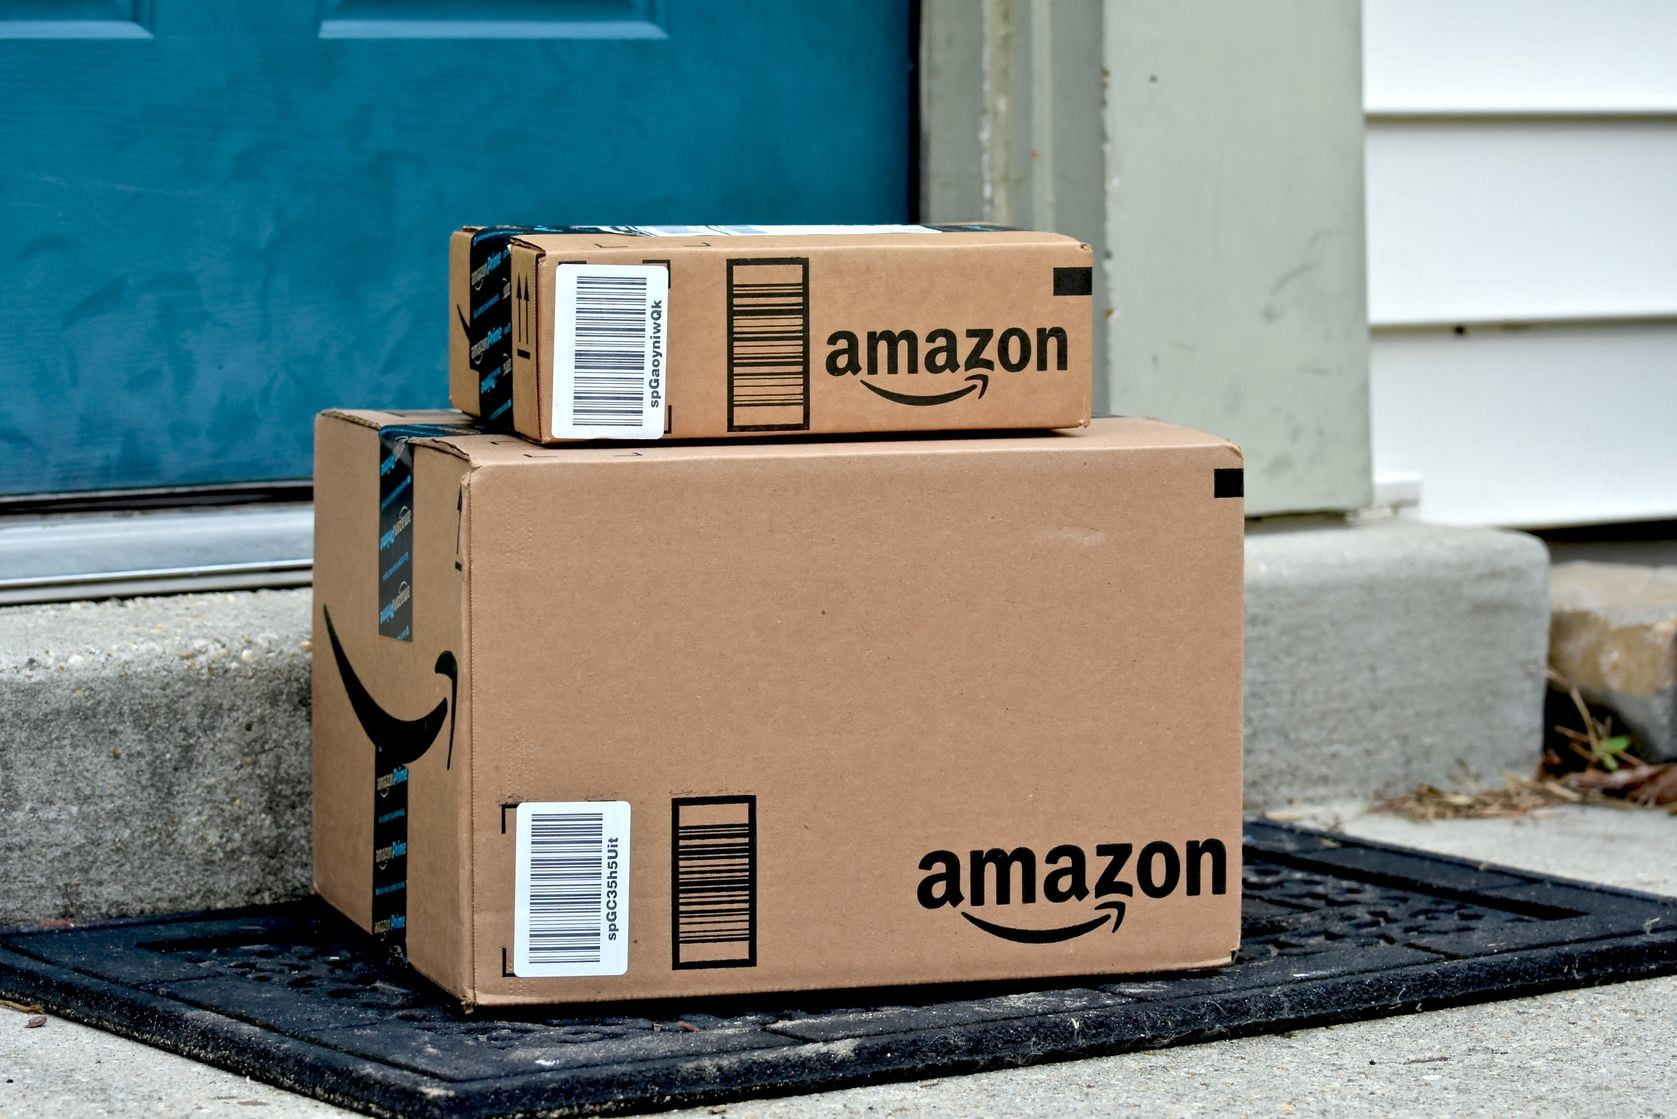 Amazon will block billions of counterfeit products by 2020